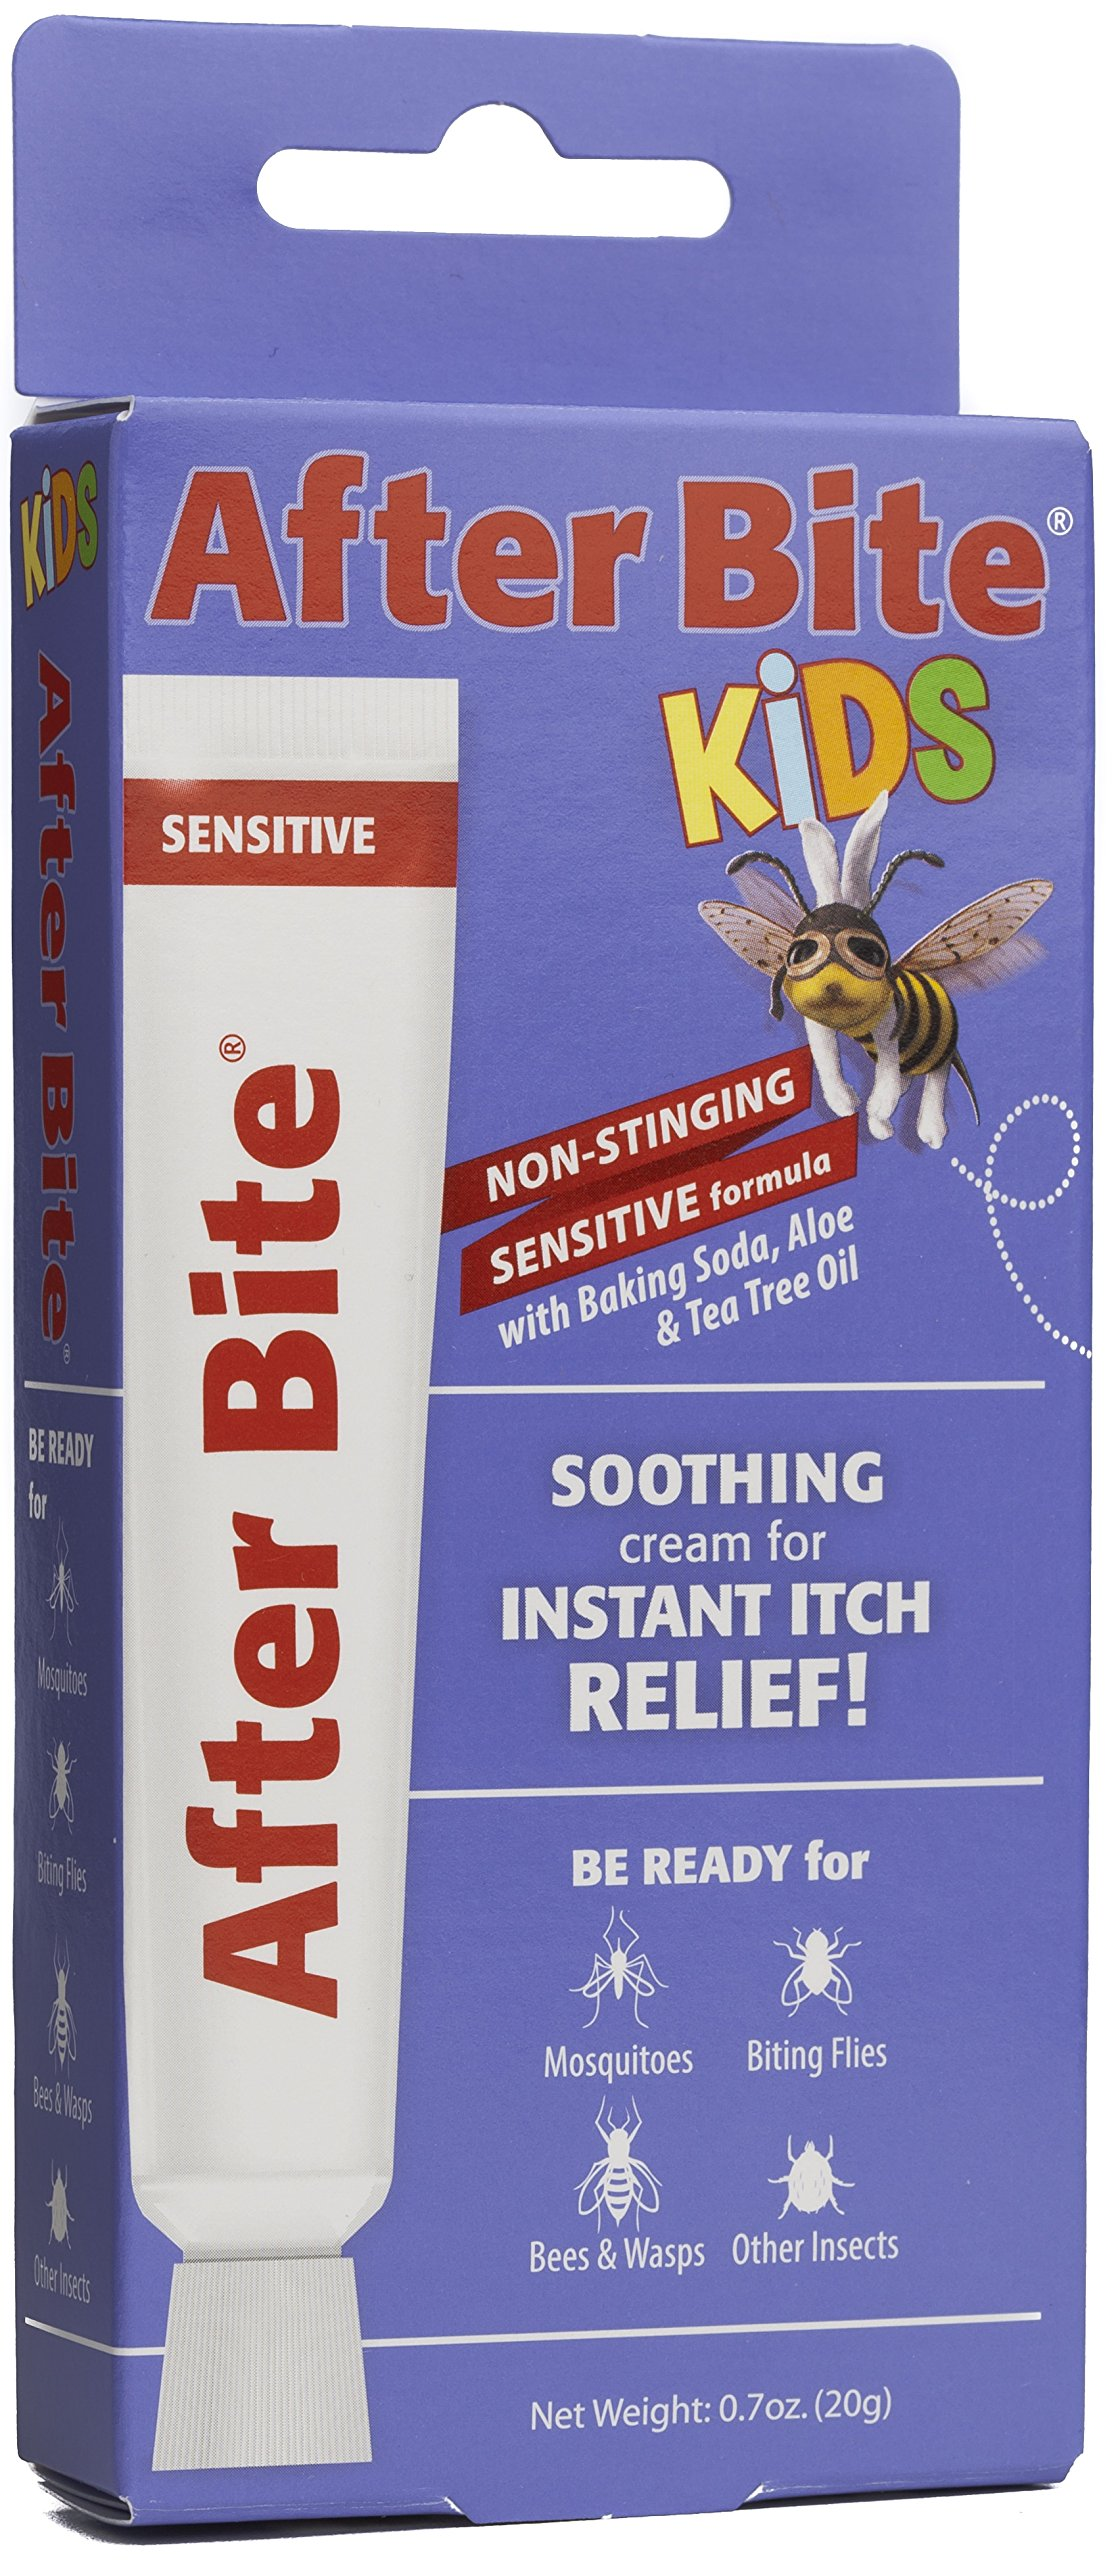 Amazoncom After Bite Kids Sensitive Formula Pharmacist Preferred